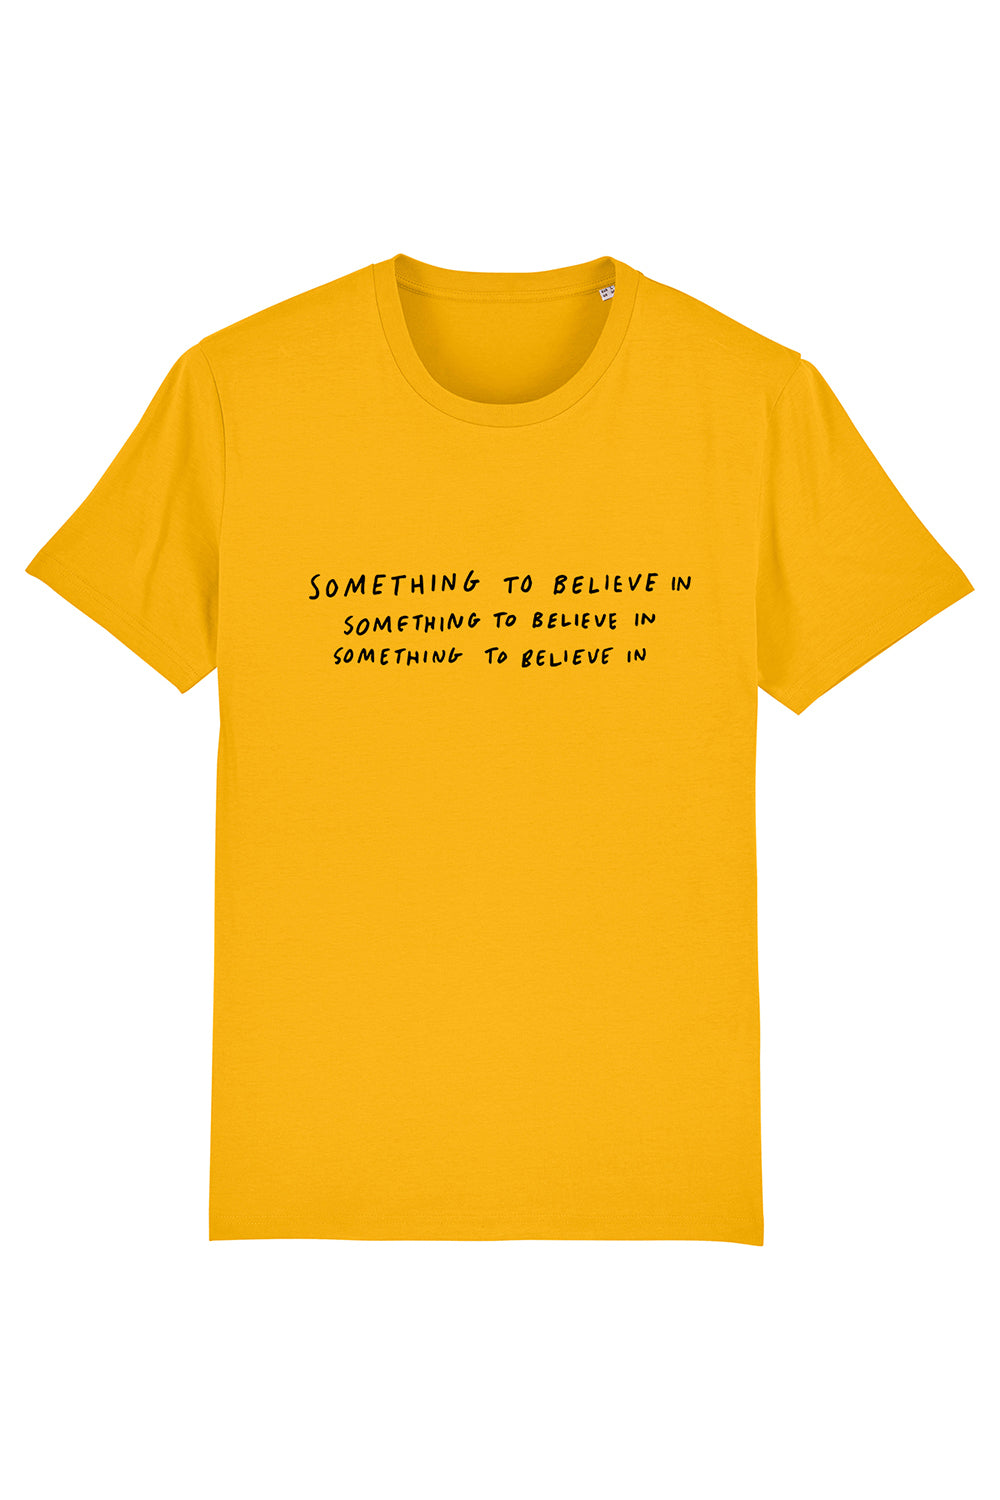 Something To Believe In T-shirt (Sunshine)